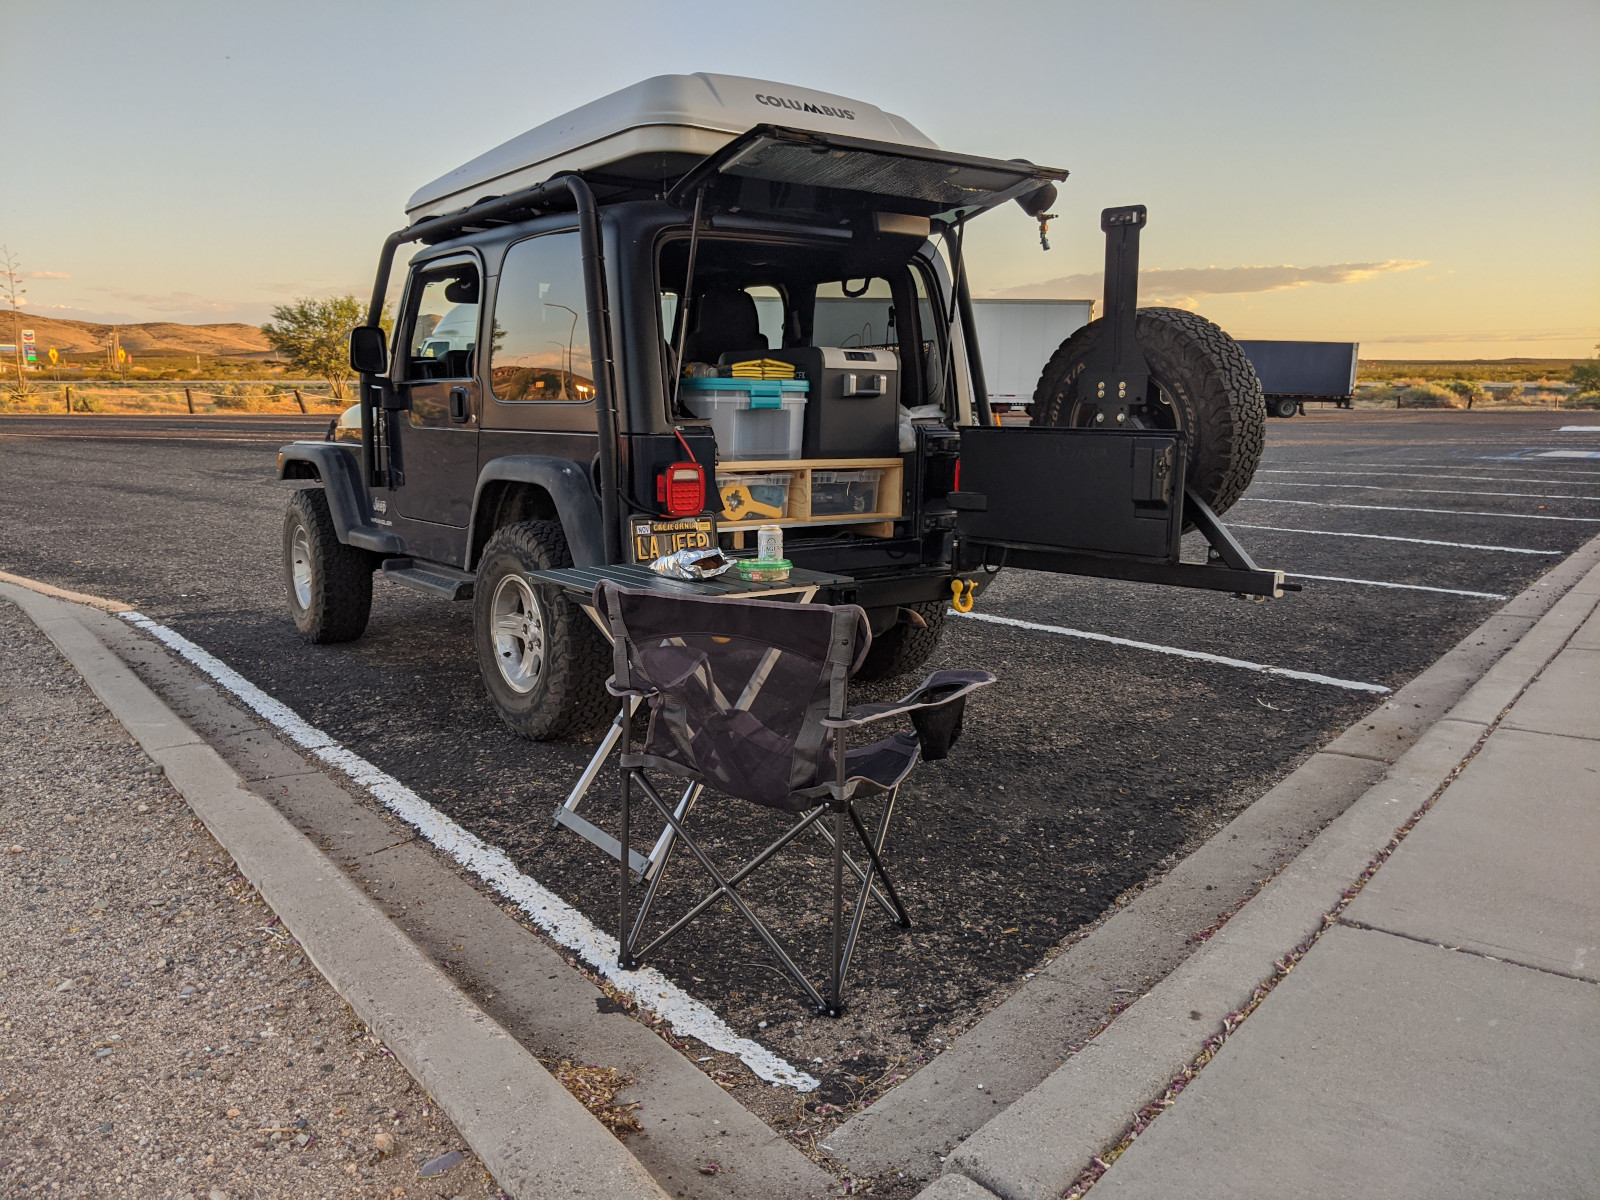 Setting up for the evening at a rest stop in Lordsburg, NM